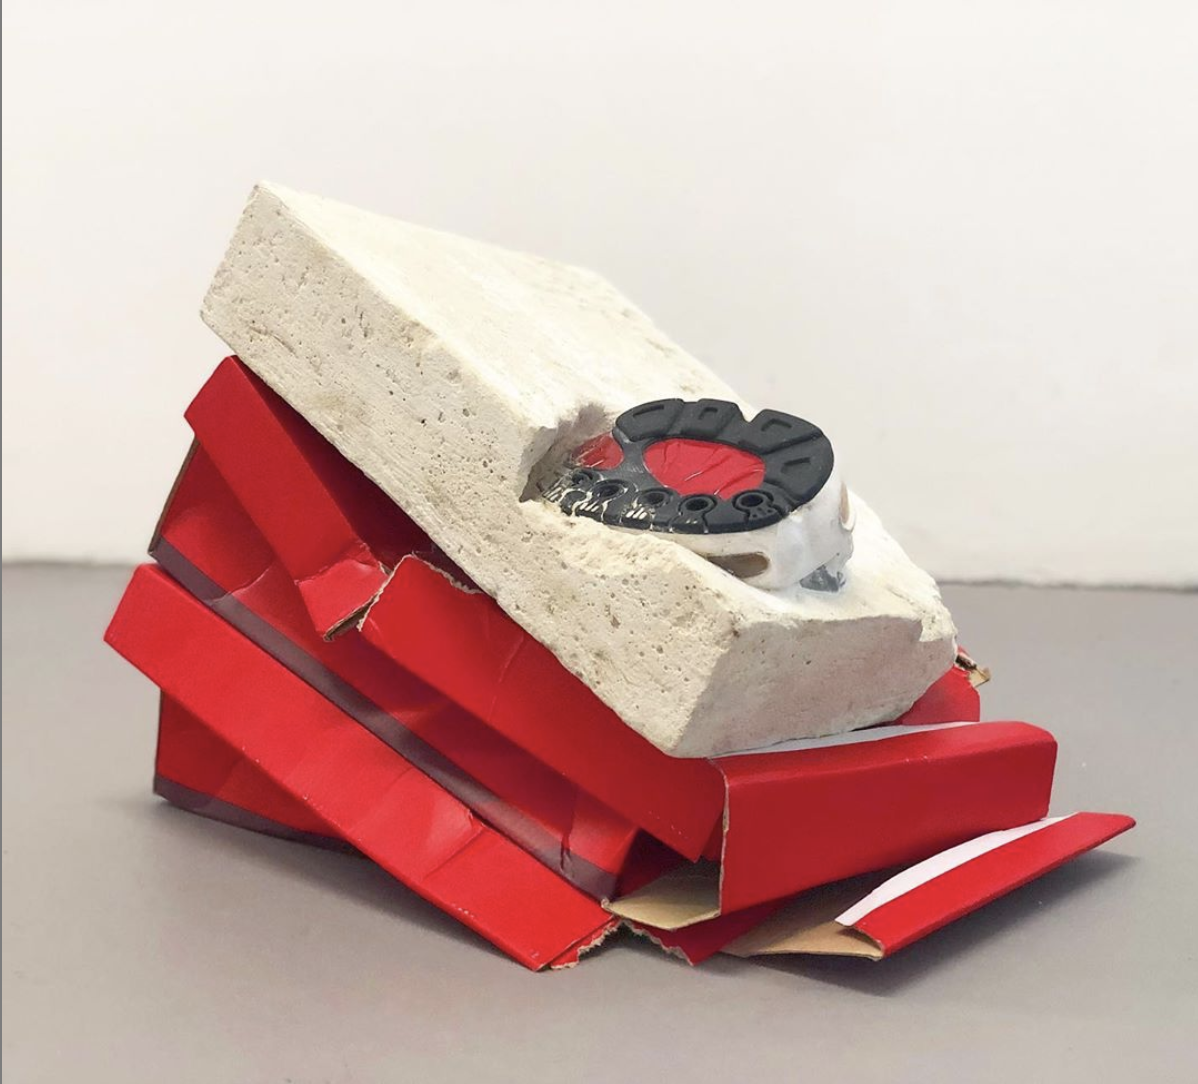 Richie Culver - Latest Works - Dear John.  Cement, sports shoe, cardboard and acrylic  Dimensions variable  2019